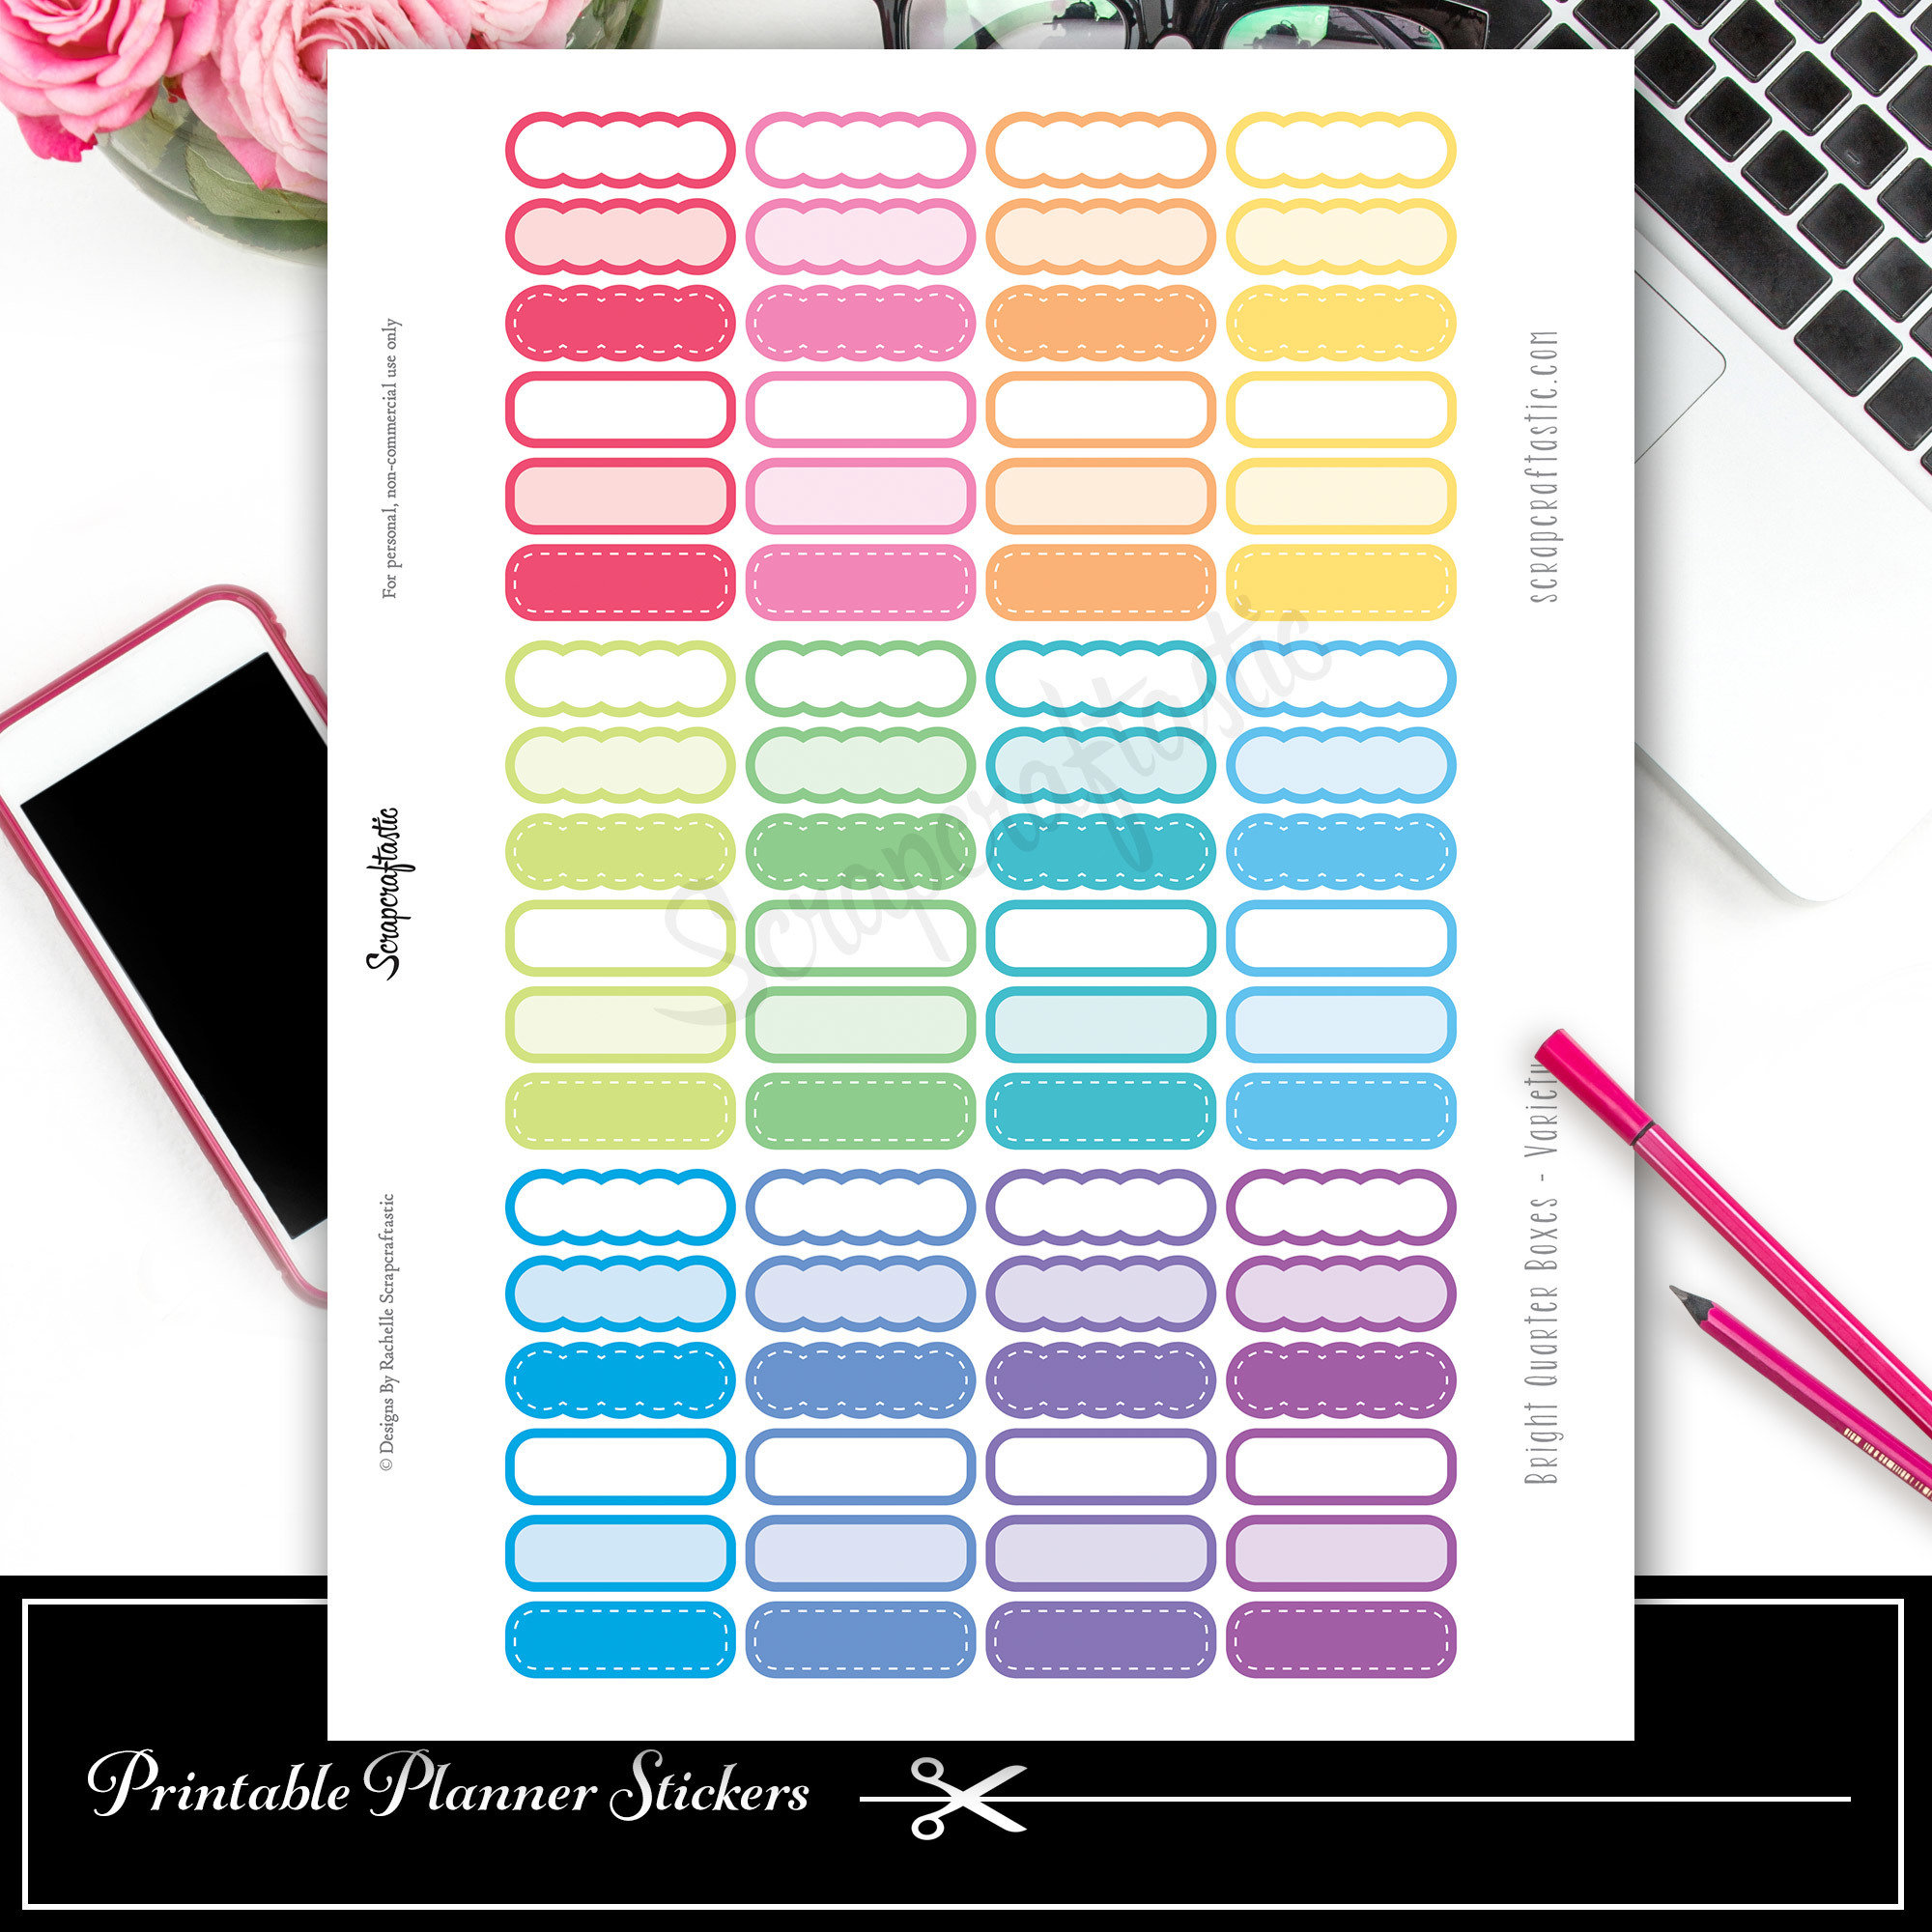 Scallop Brights Variety Quarter Box Printable Planner Stickers and Silhouette Cut File 03014